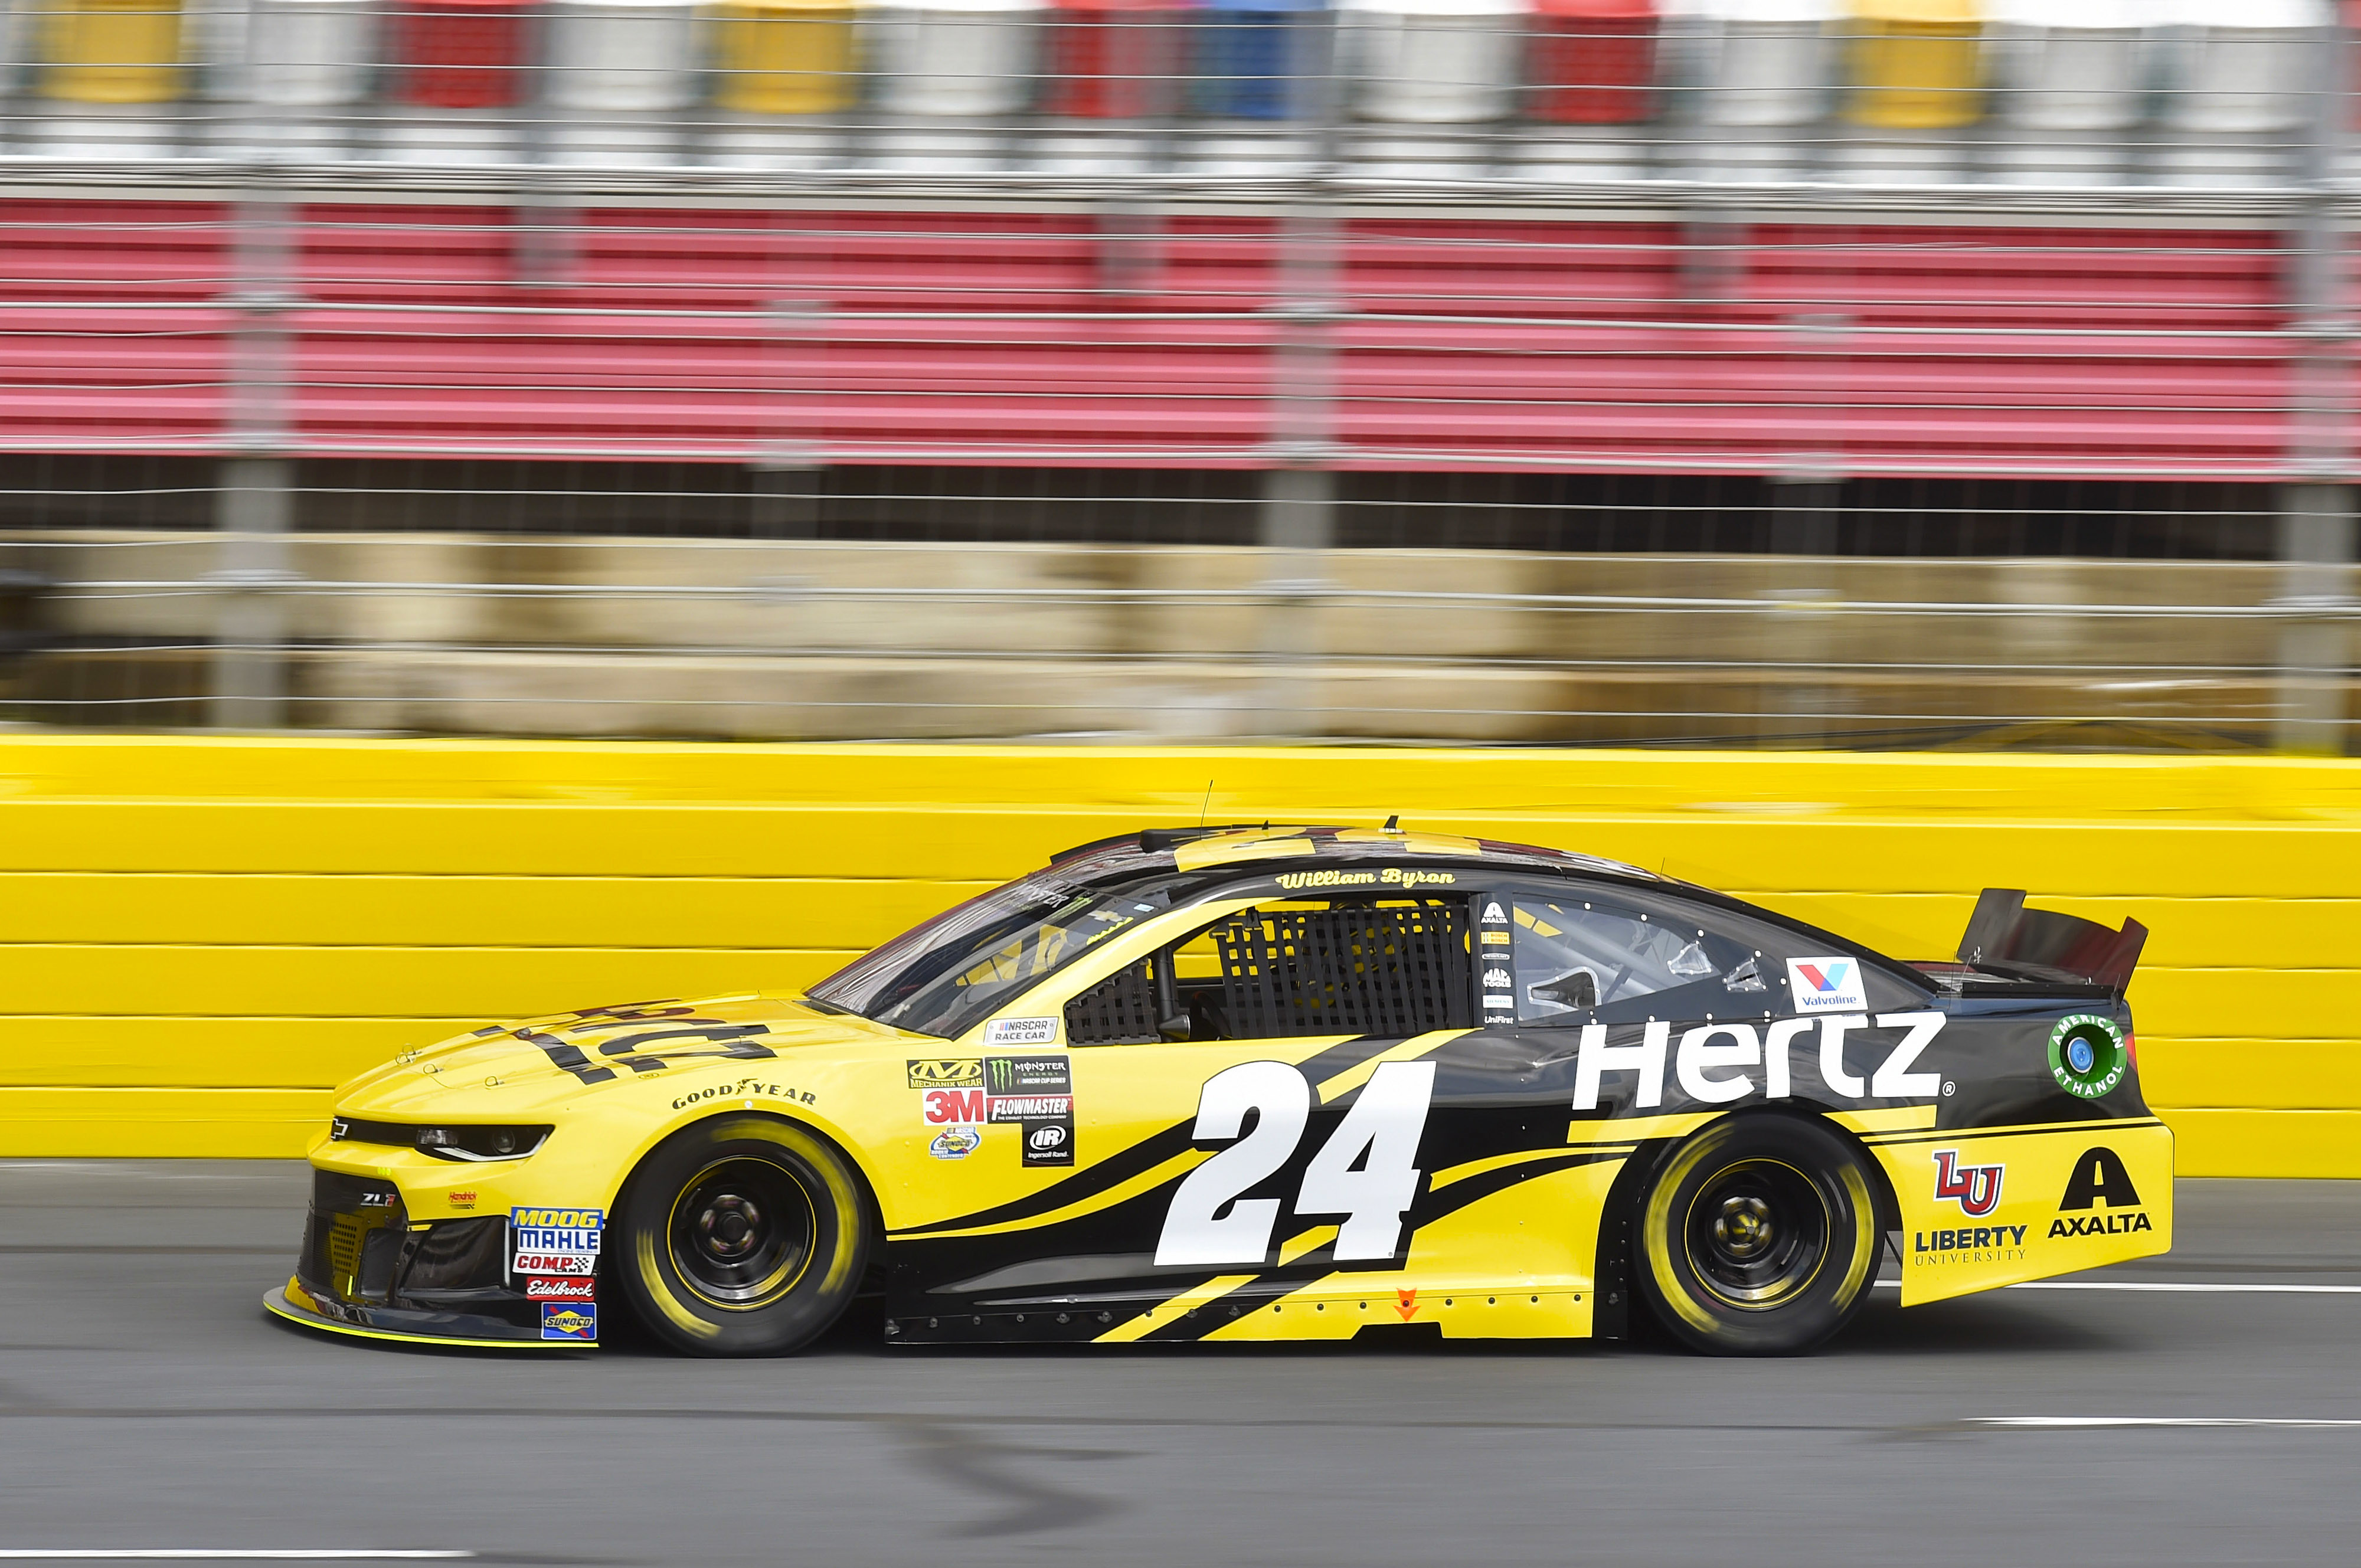 Win a VIP race experience with Byron and No. 24 team thanks to Hertz | Hendrick Motorsports